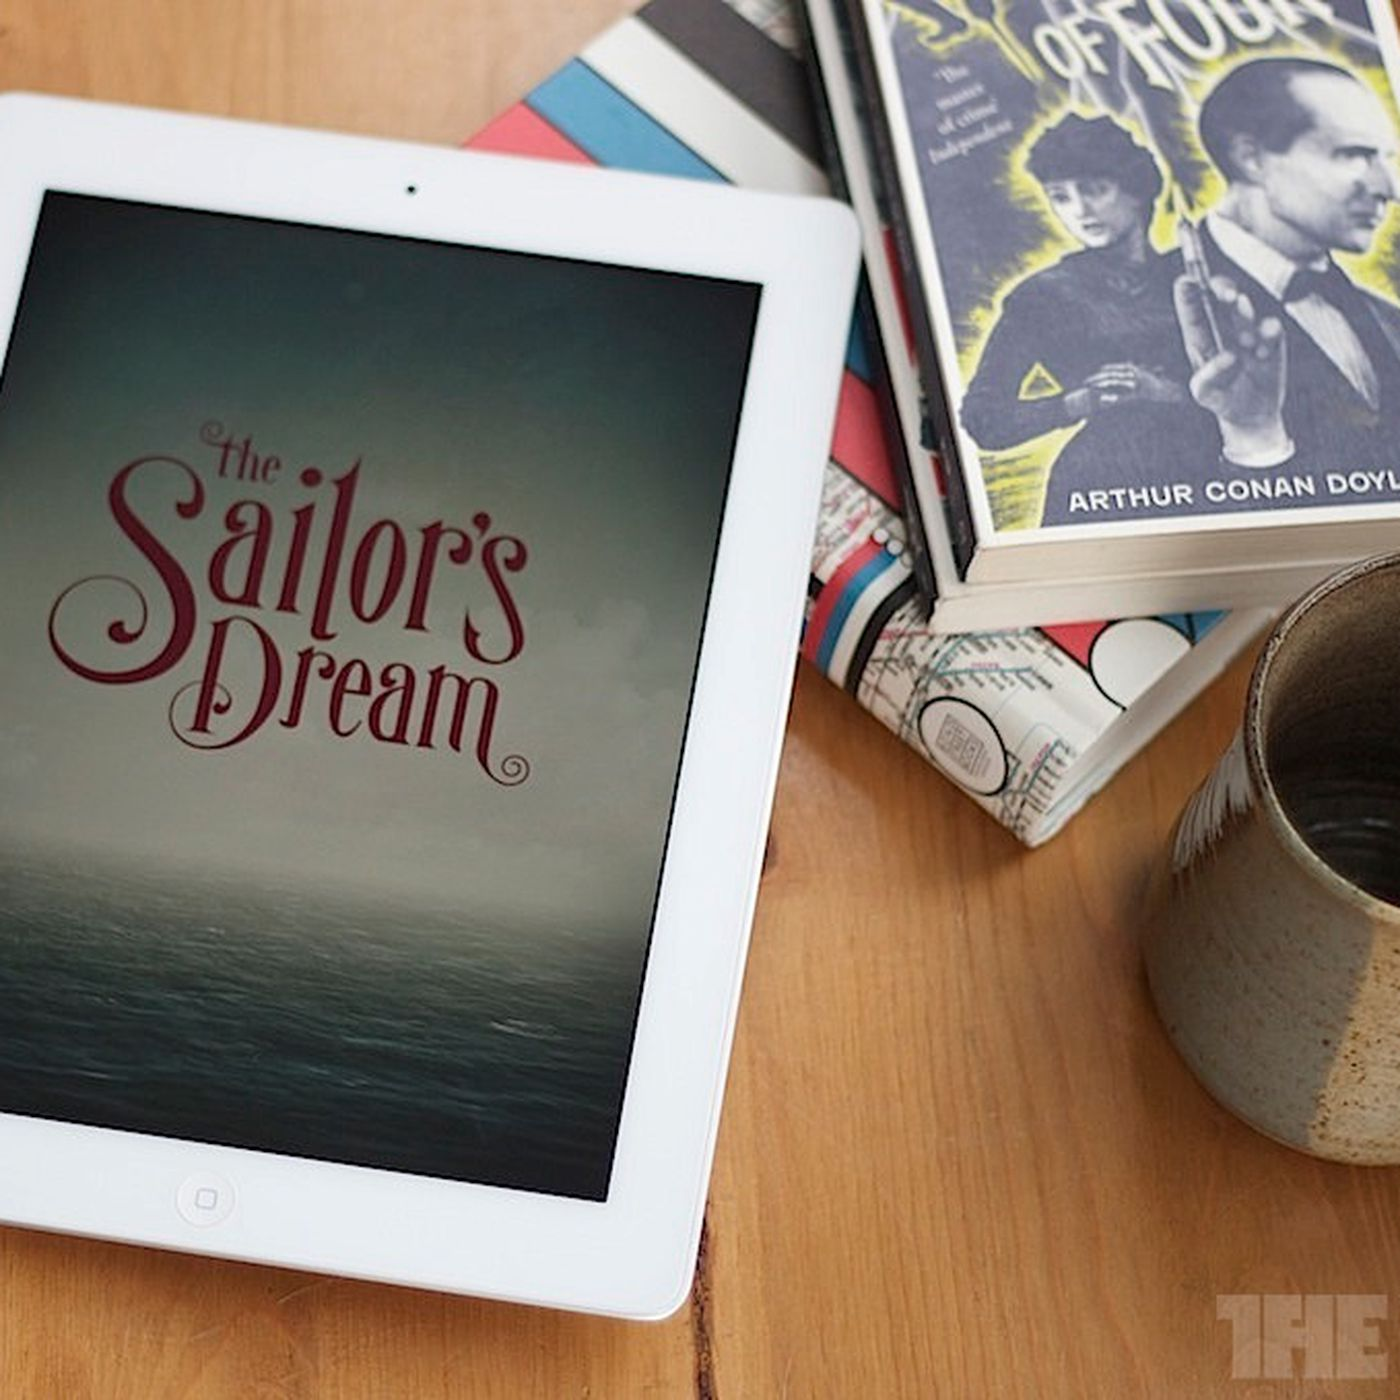 The Sailor's Dream' is the best way to chill out on an iPad